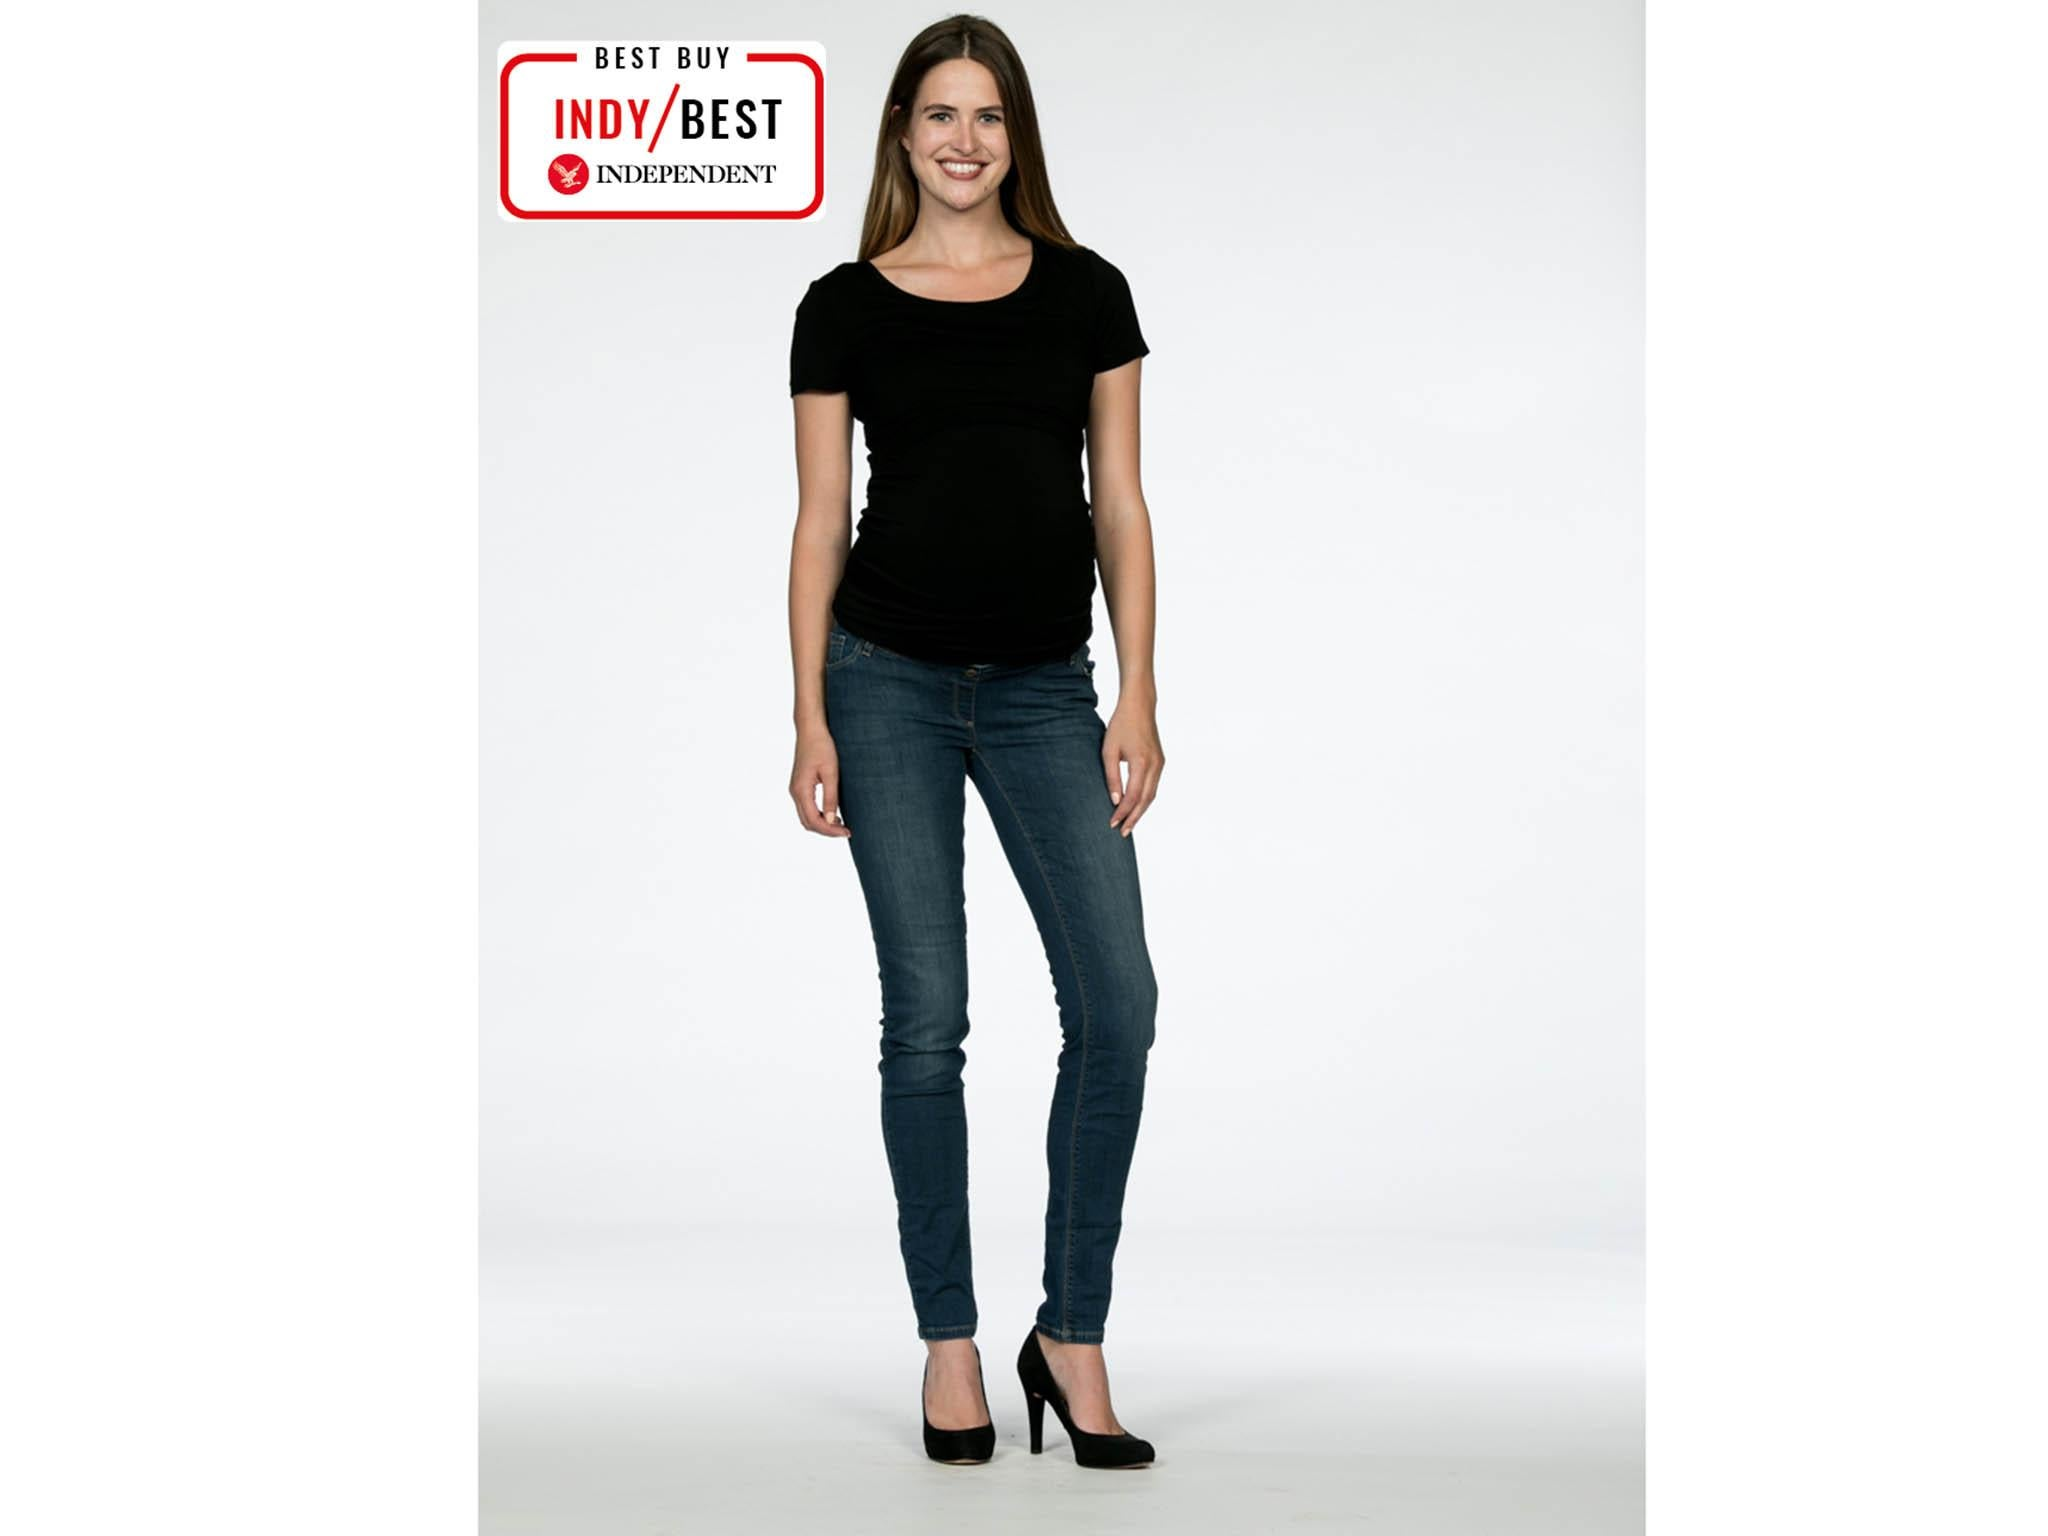 c07c7dbc84 10 best maternity jeans | The Independent